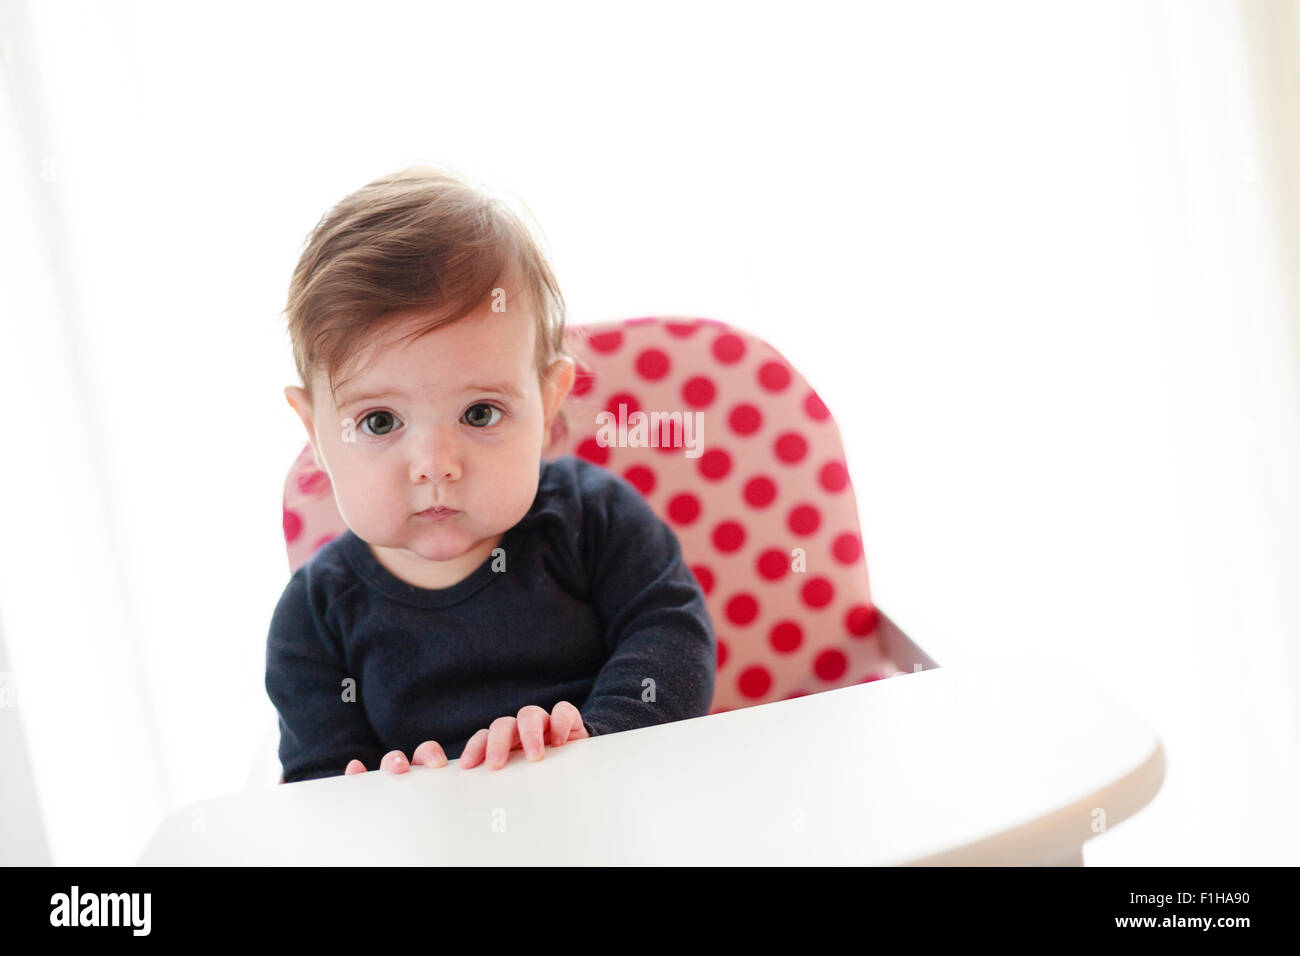 Six (6) month old baby girl in high chair - Stock Image